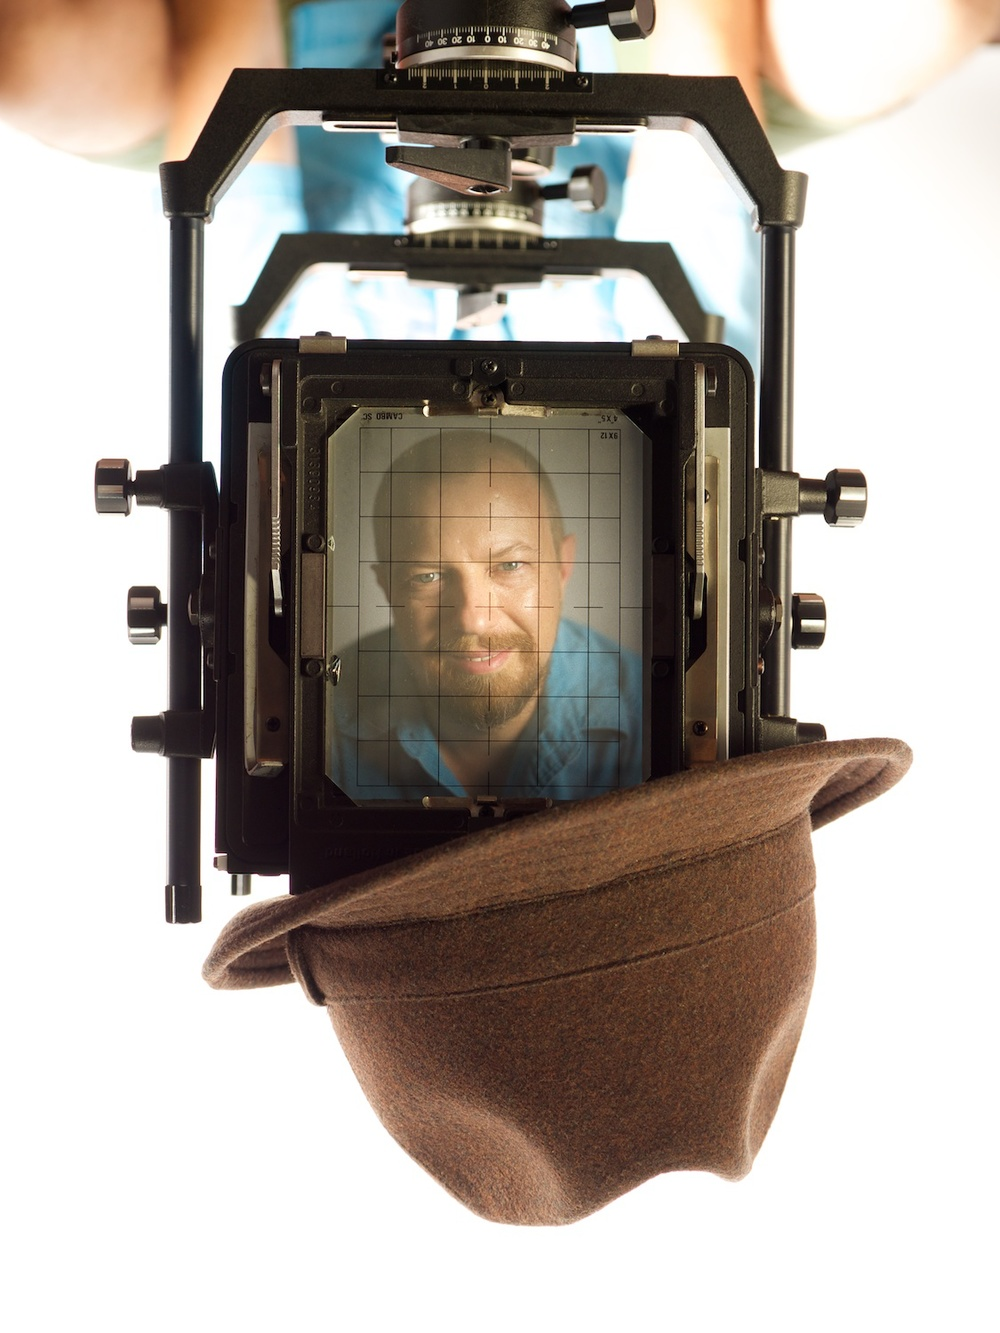 One of the better shots, now inverted to put my mug right-side up. But the hanging hat just was too weird.